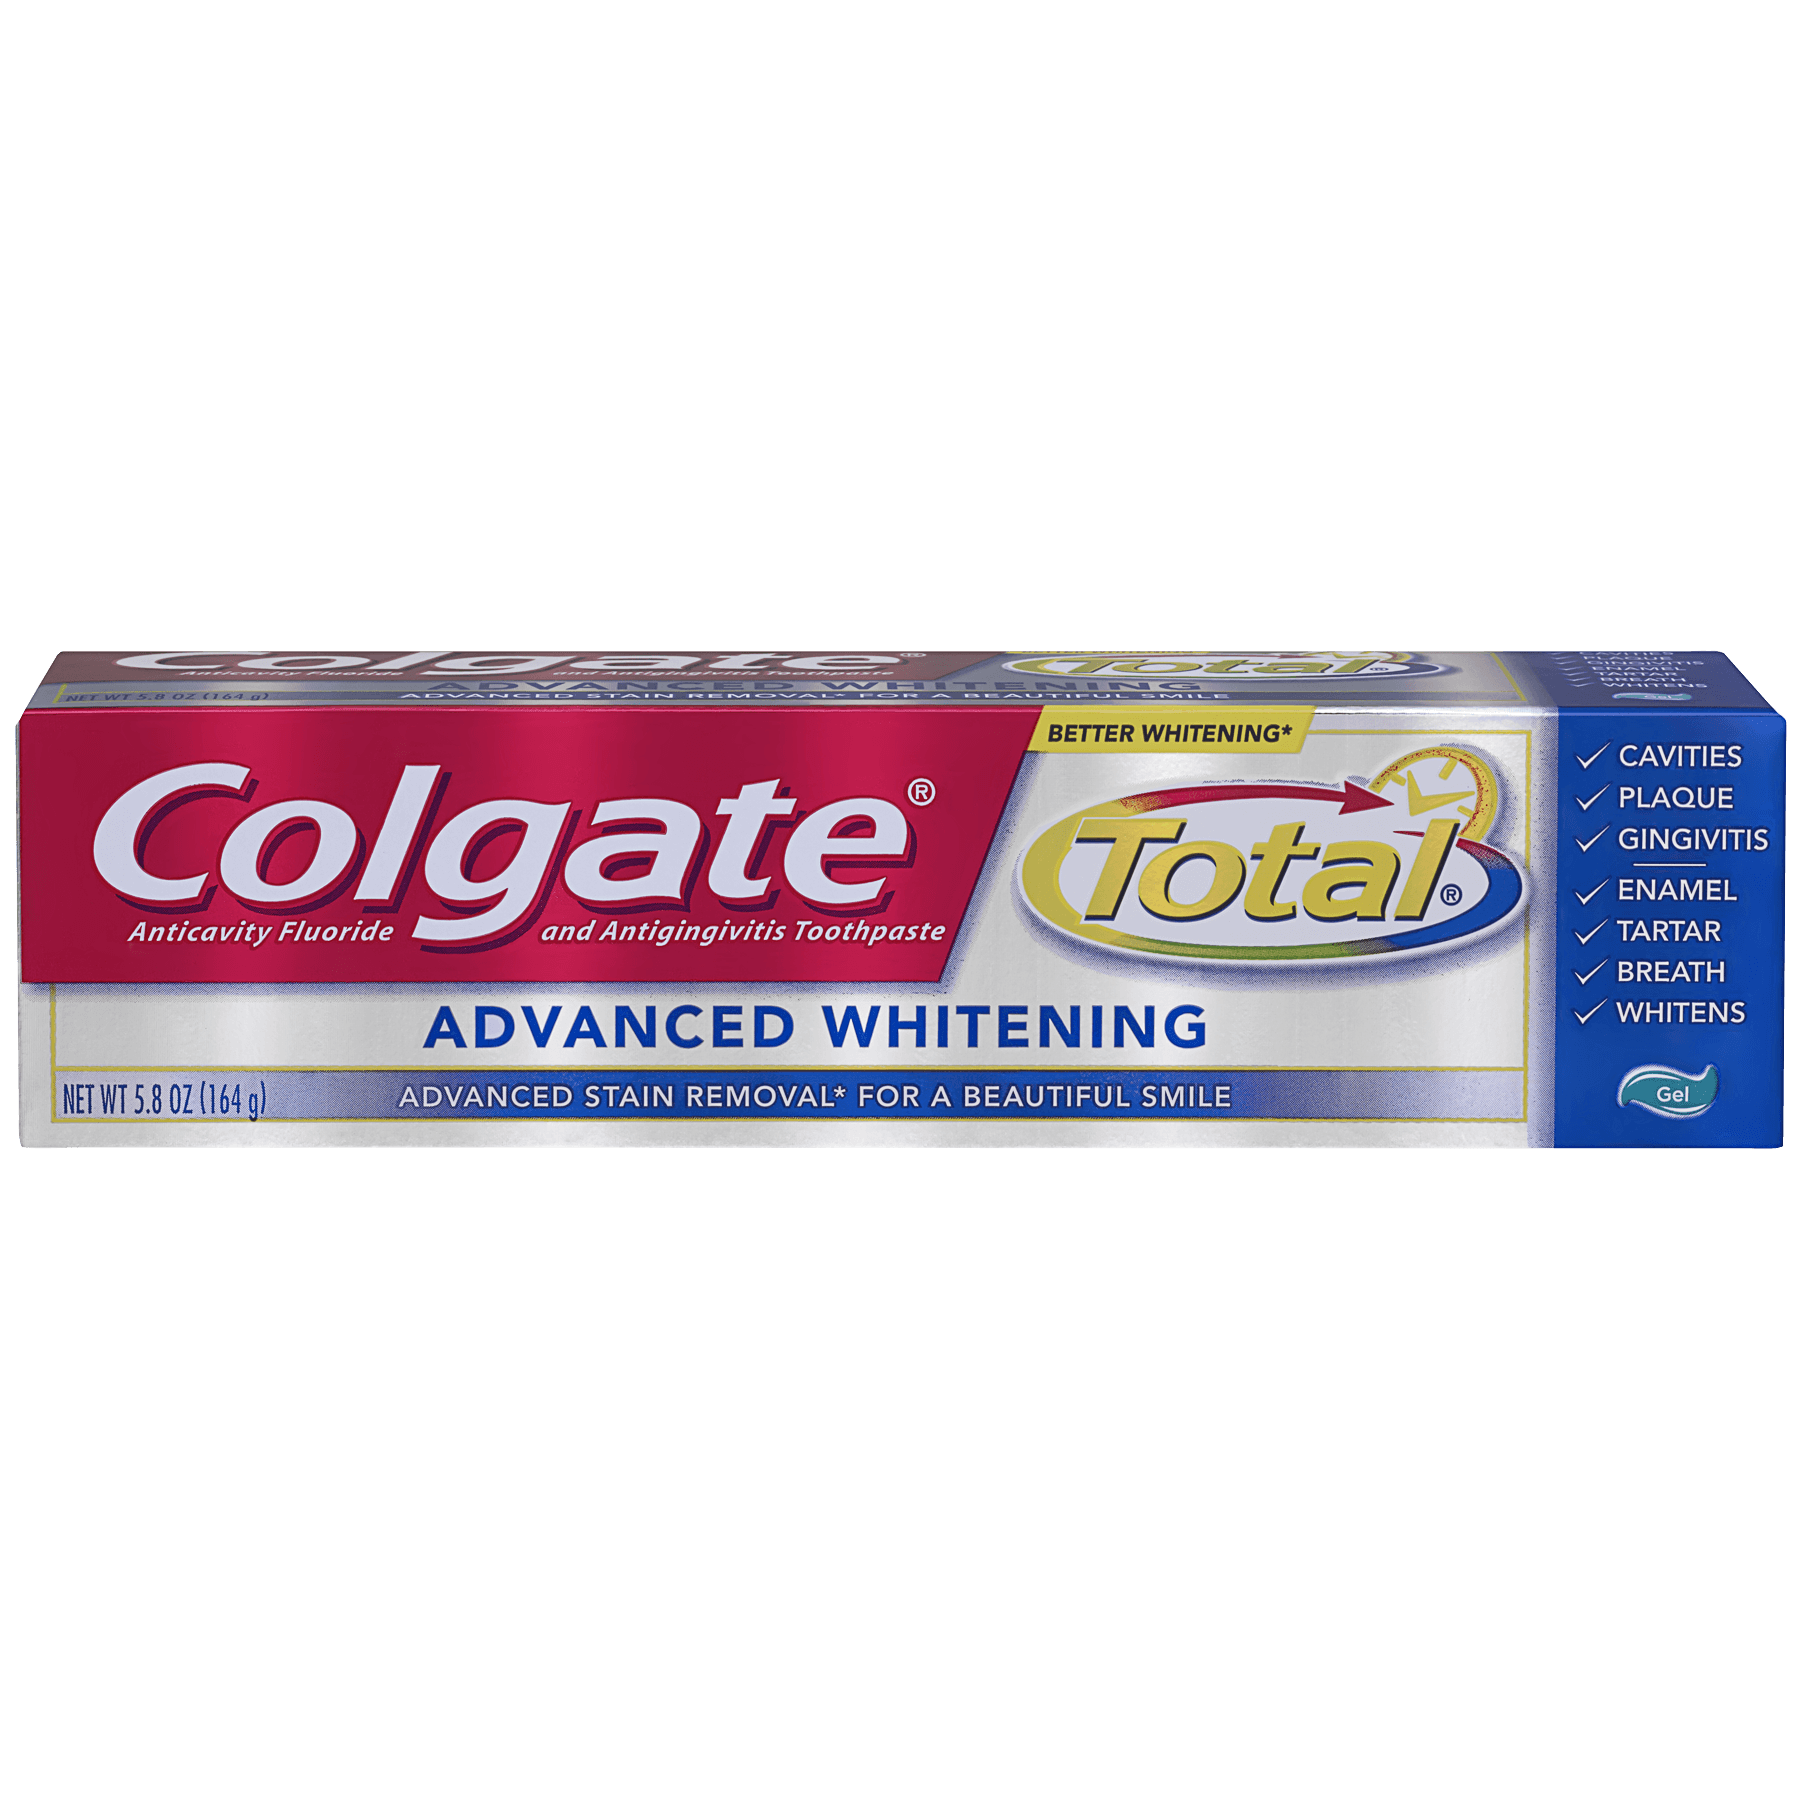 Colgate Total Advanced Whitening Toothpaste, Gel - 5.8 oz